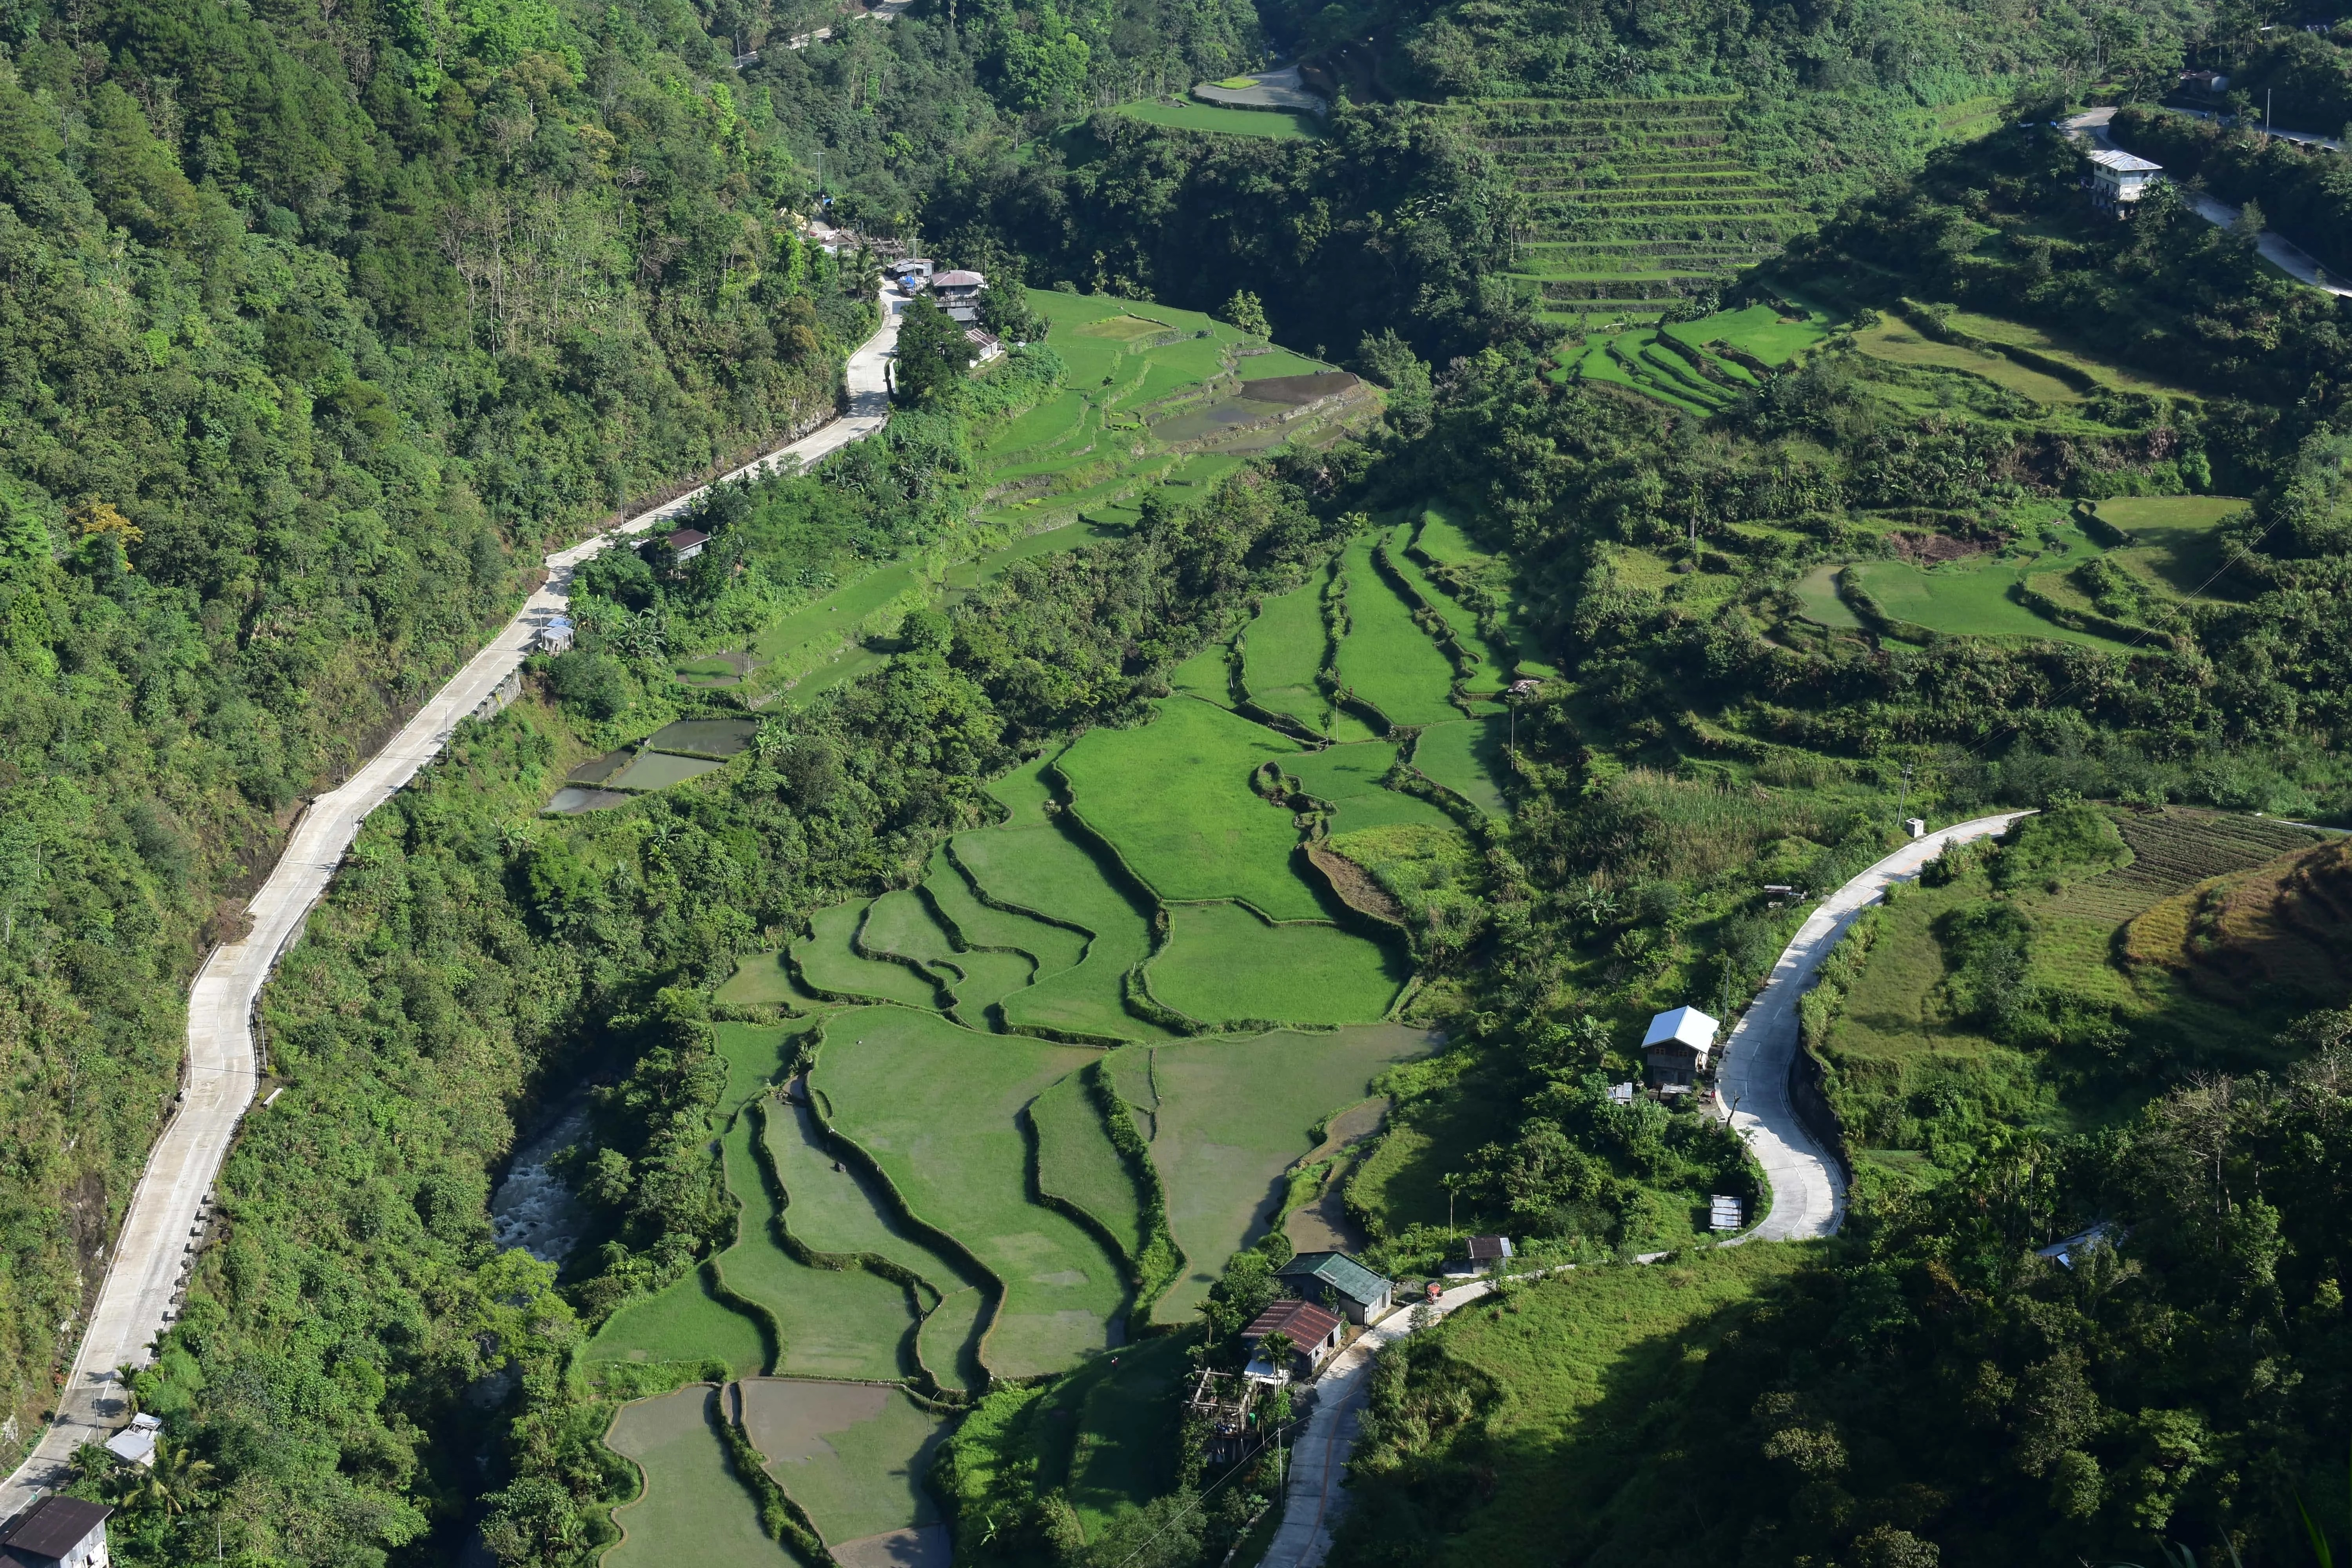 One of the reasons of visiting Banaue is Hapao Rice Terraces